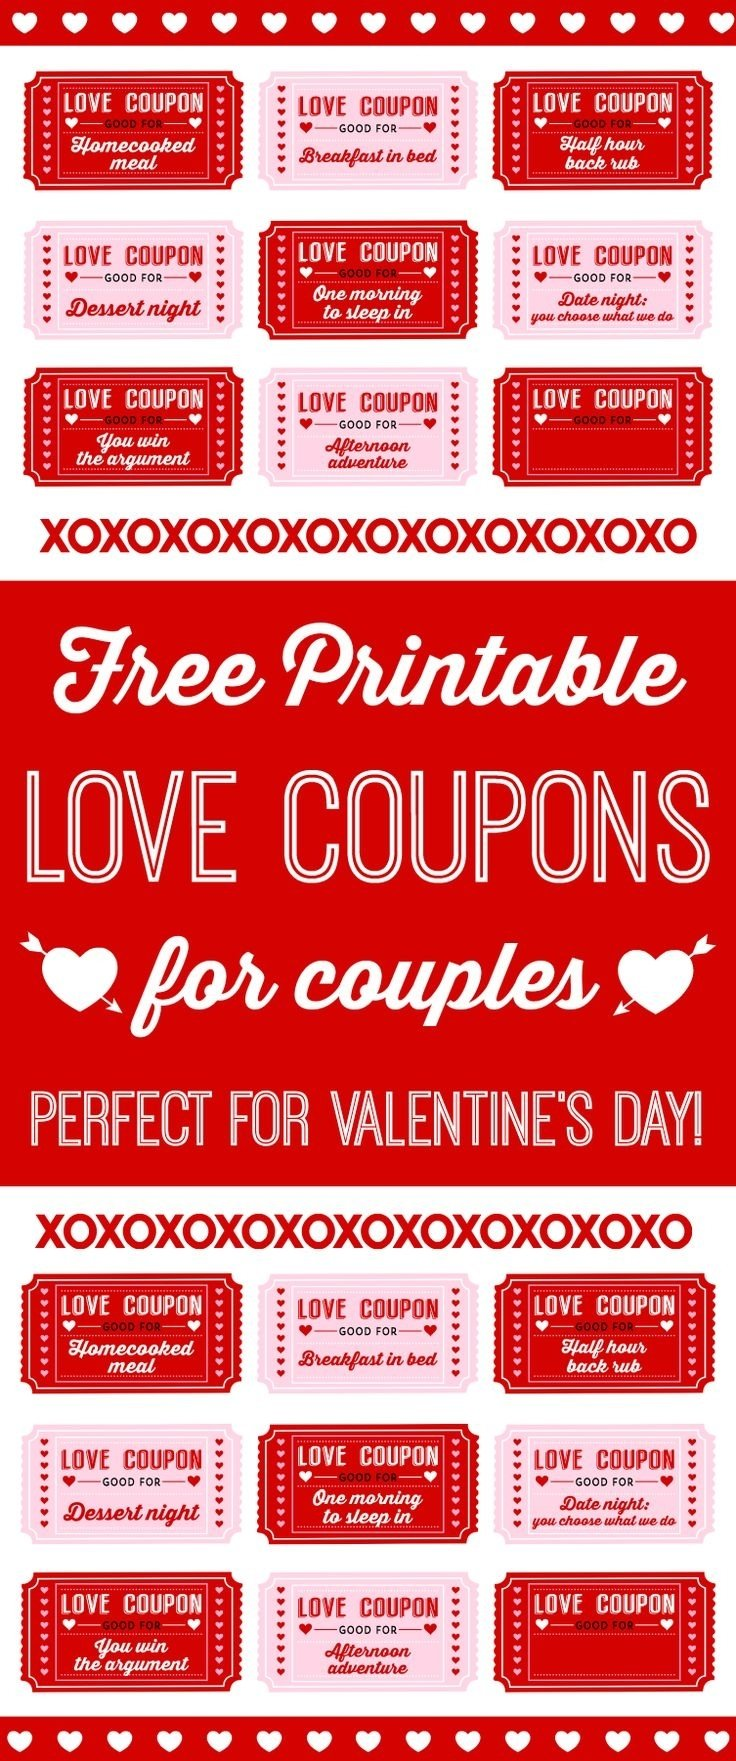 coupon ideas for girlfriend